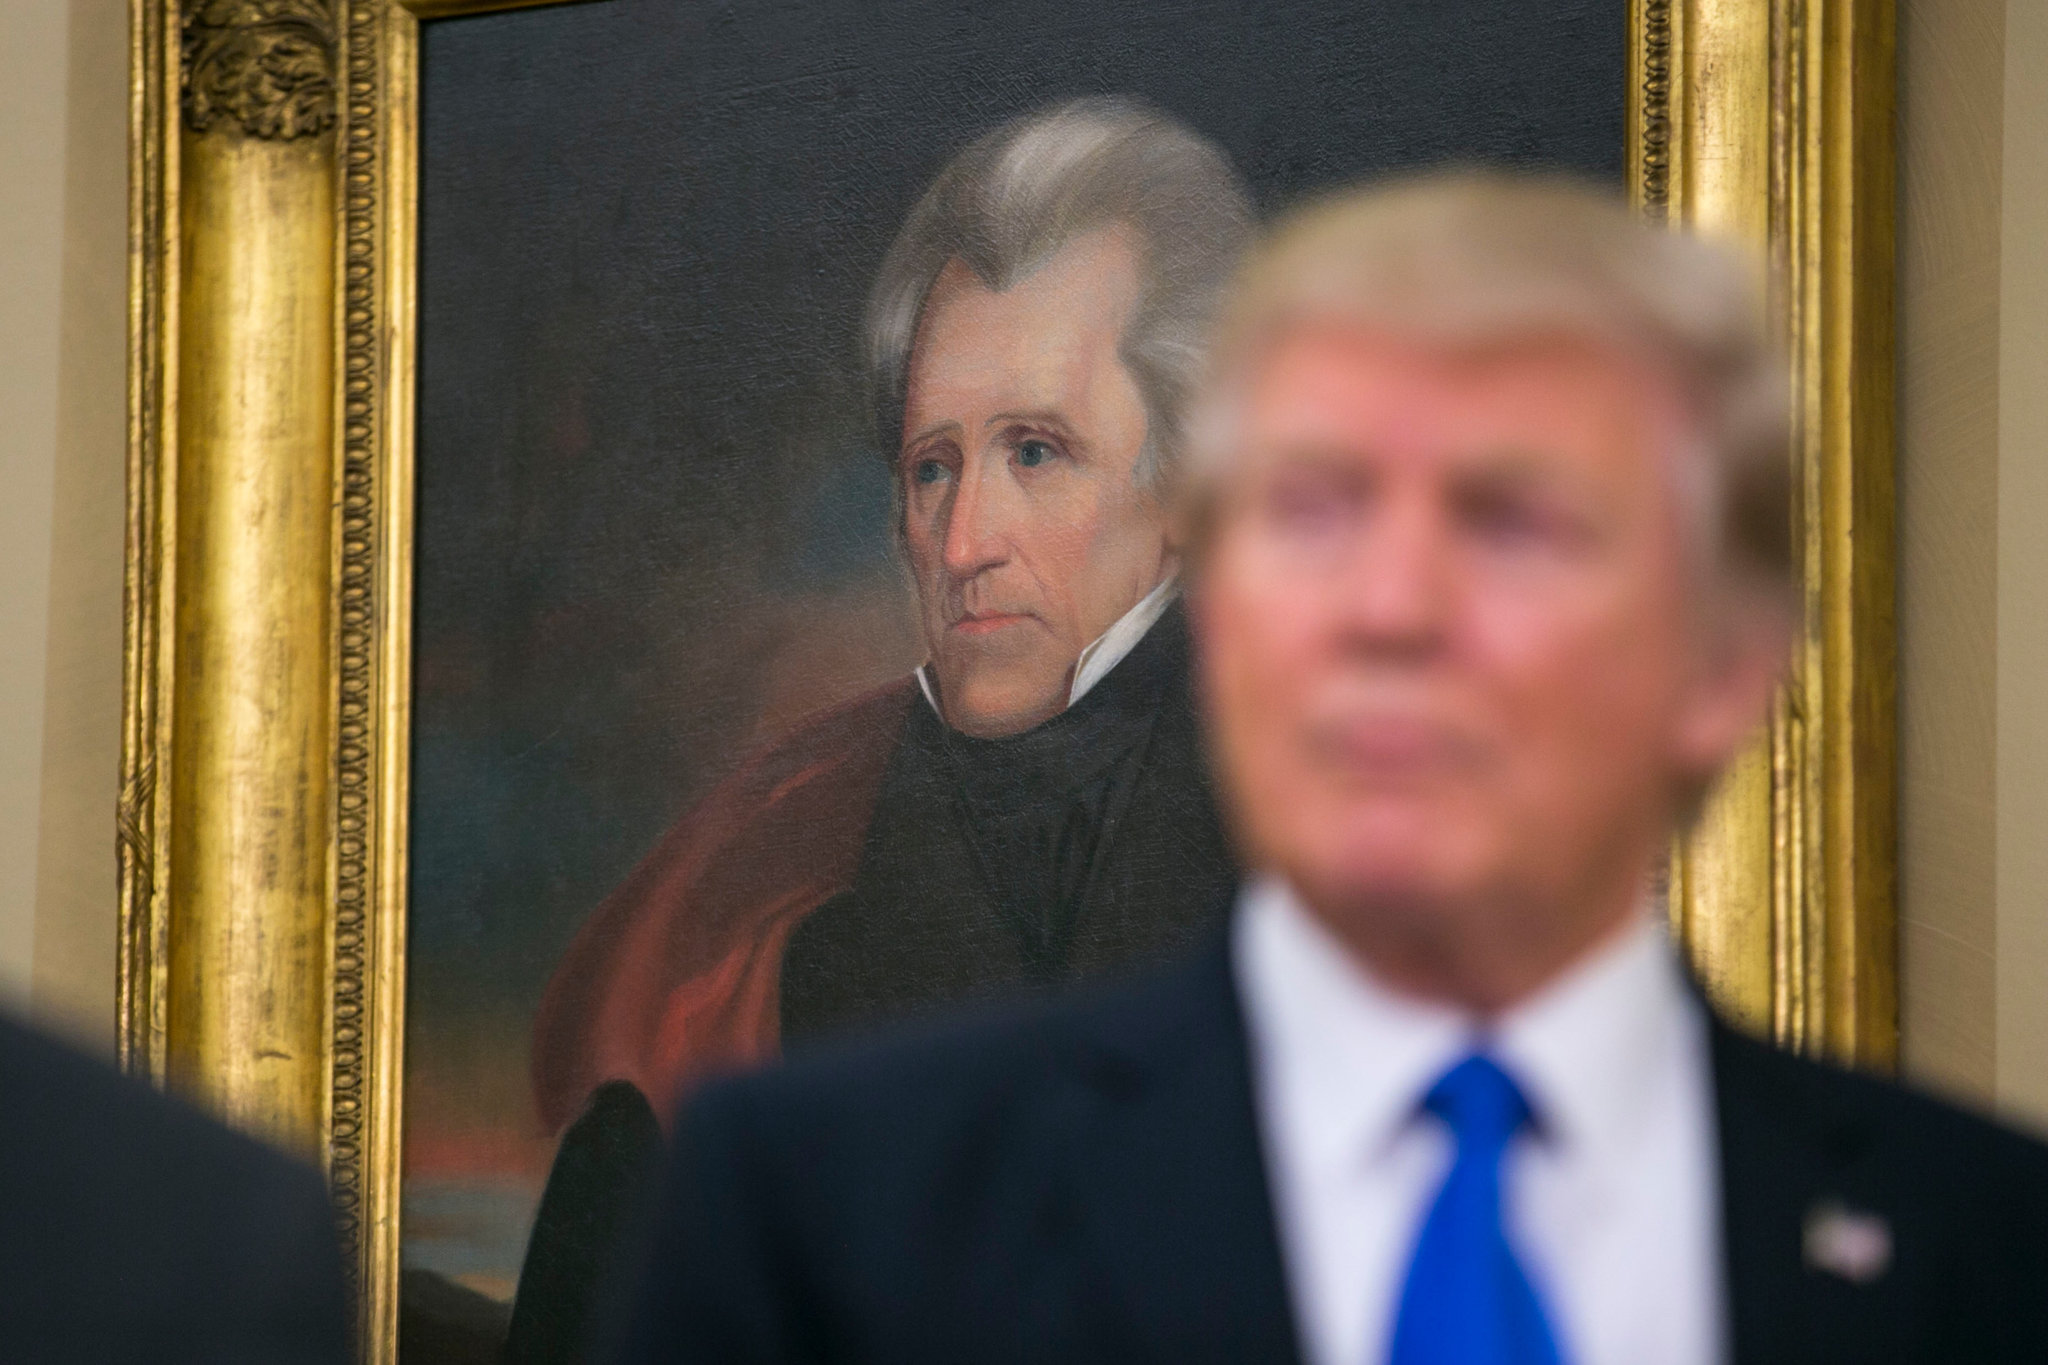 A portrait of Andrew Jackson in the Oval Office